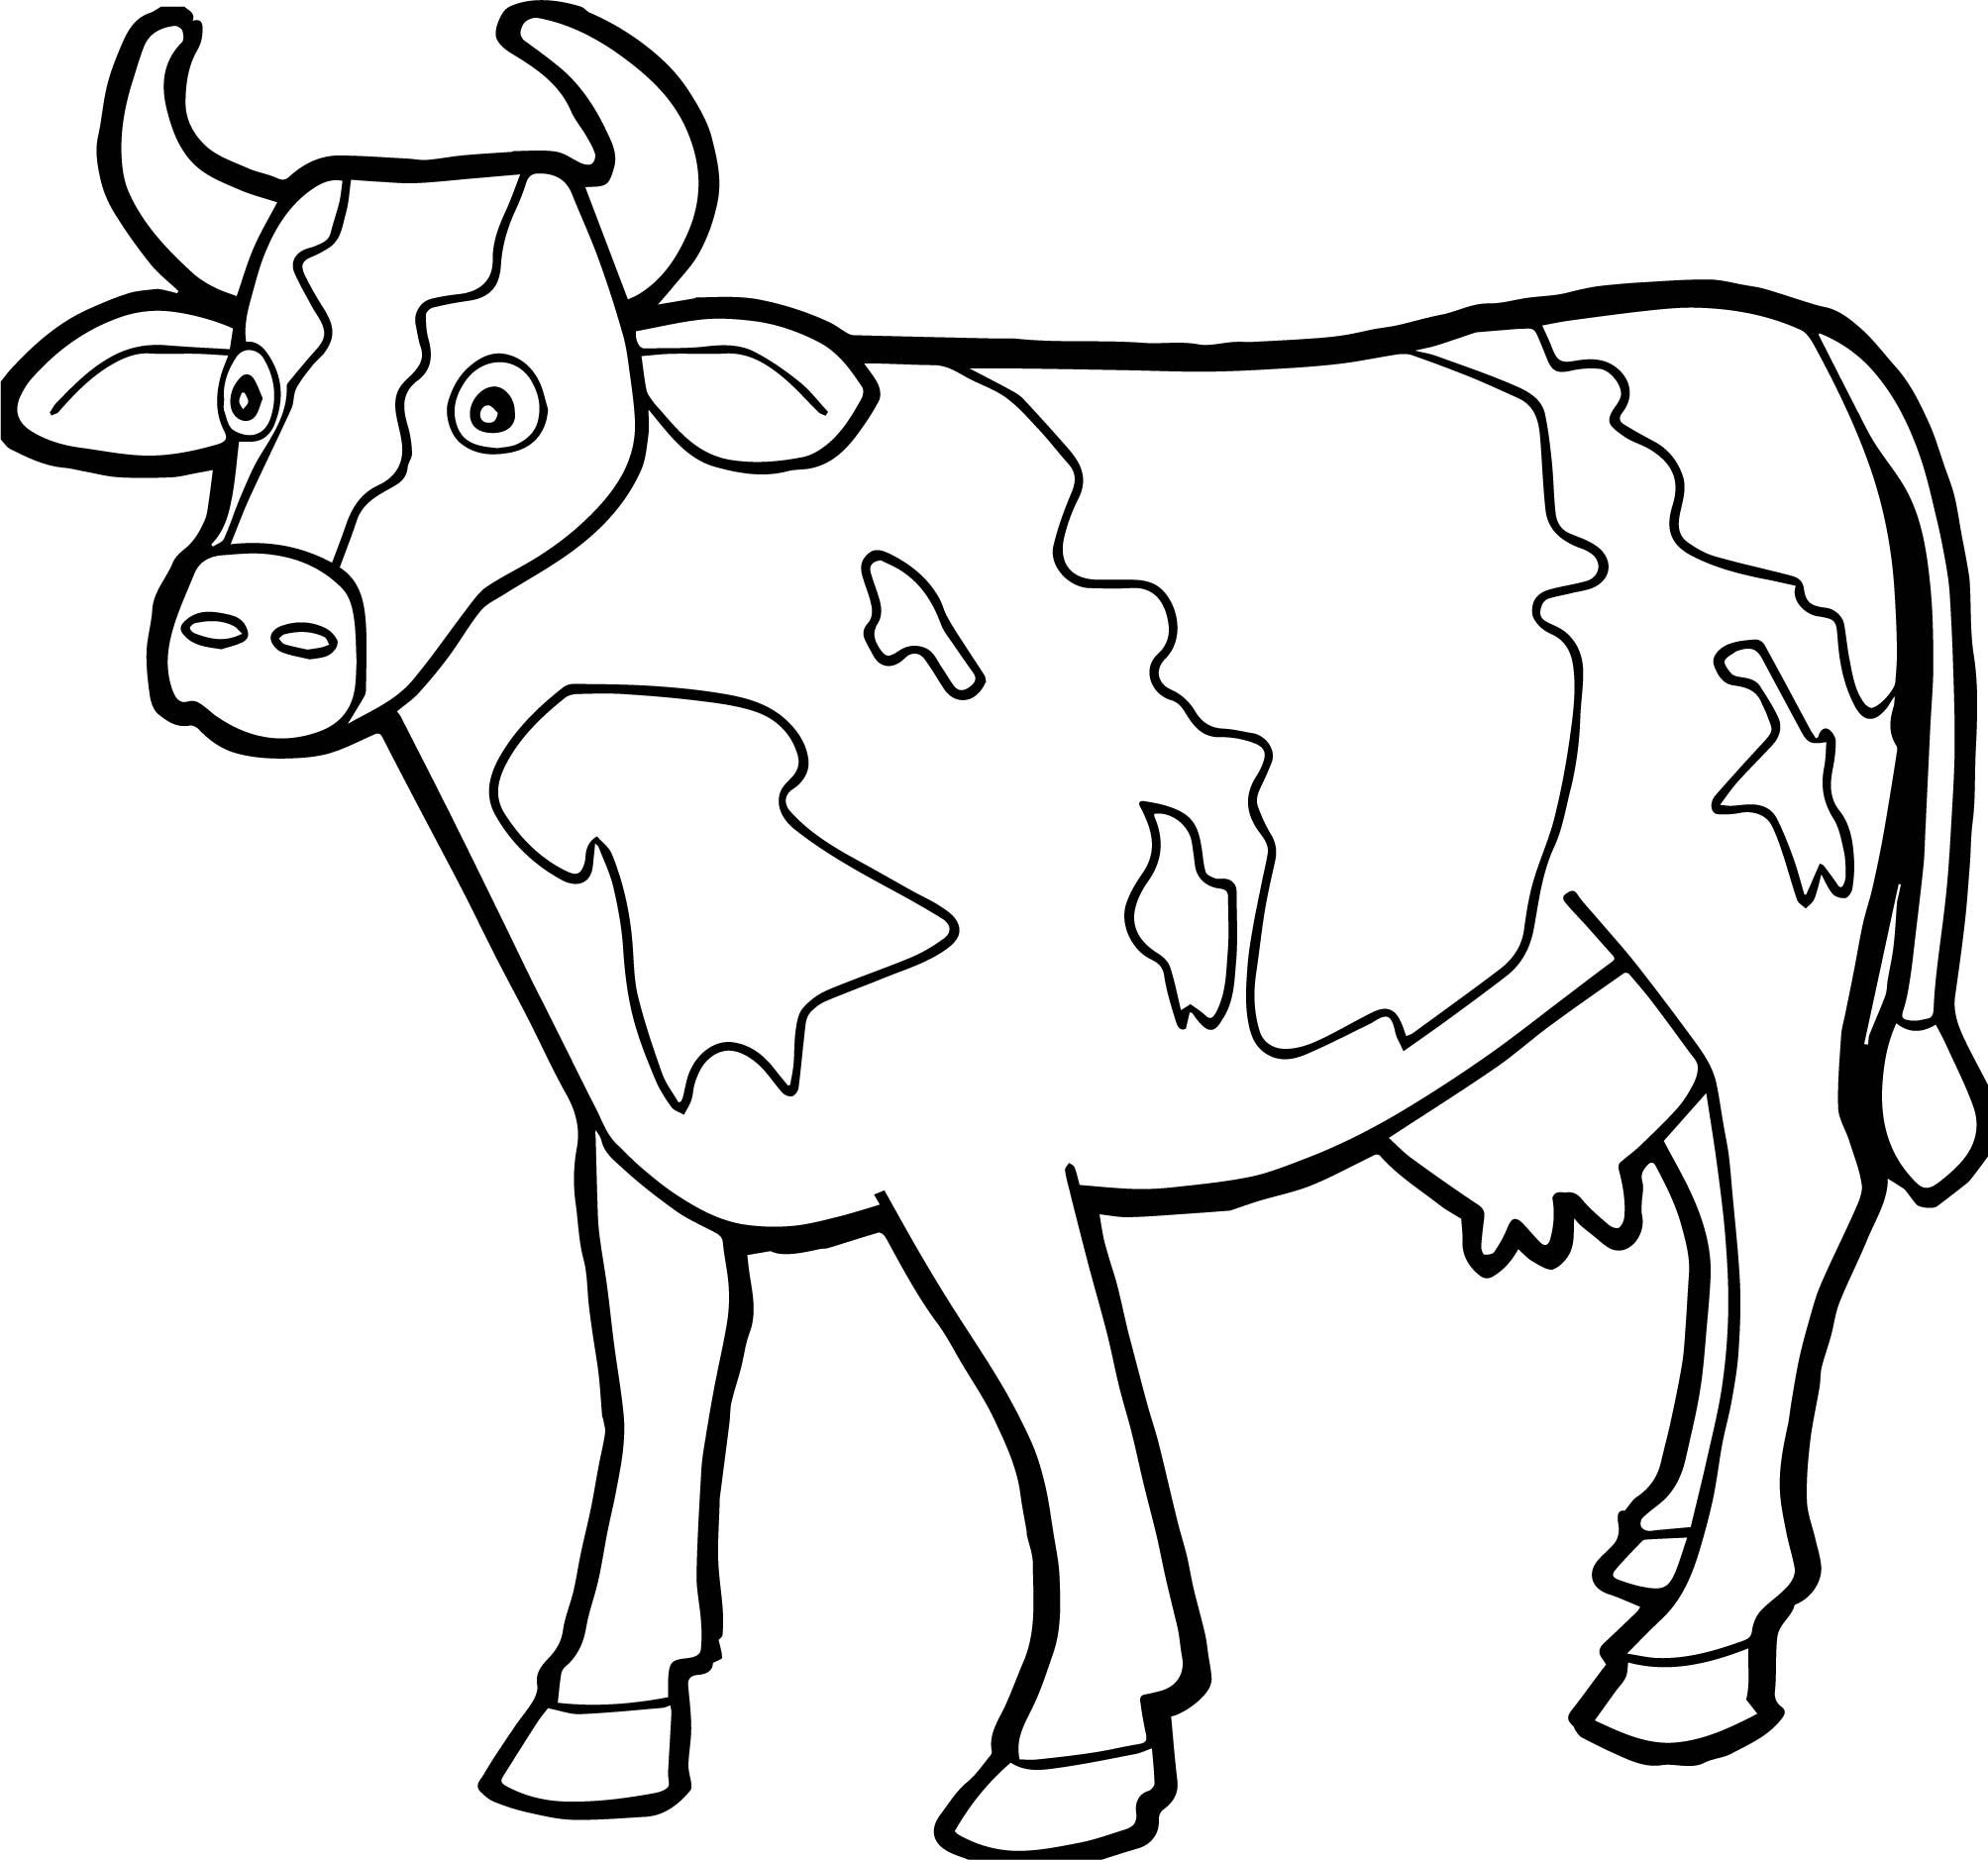 cow pictures to color free printable cow coloring pages for kids cool2bkids cow to pictures color